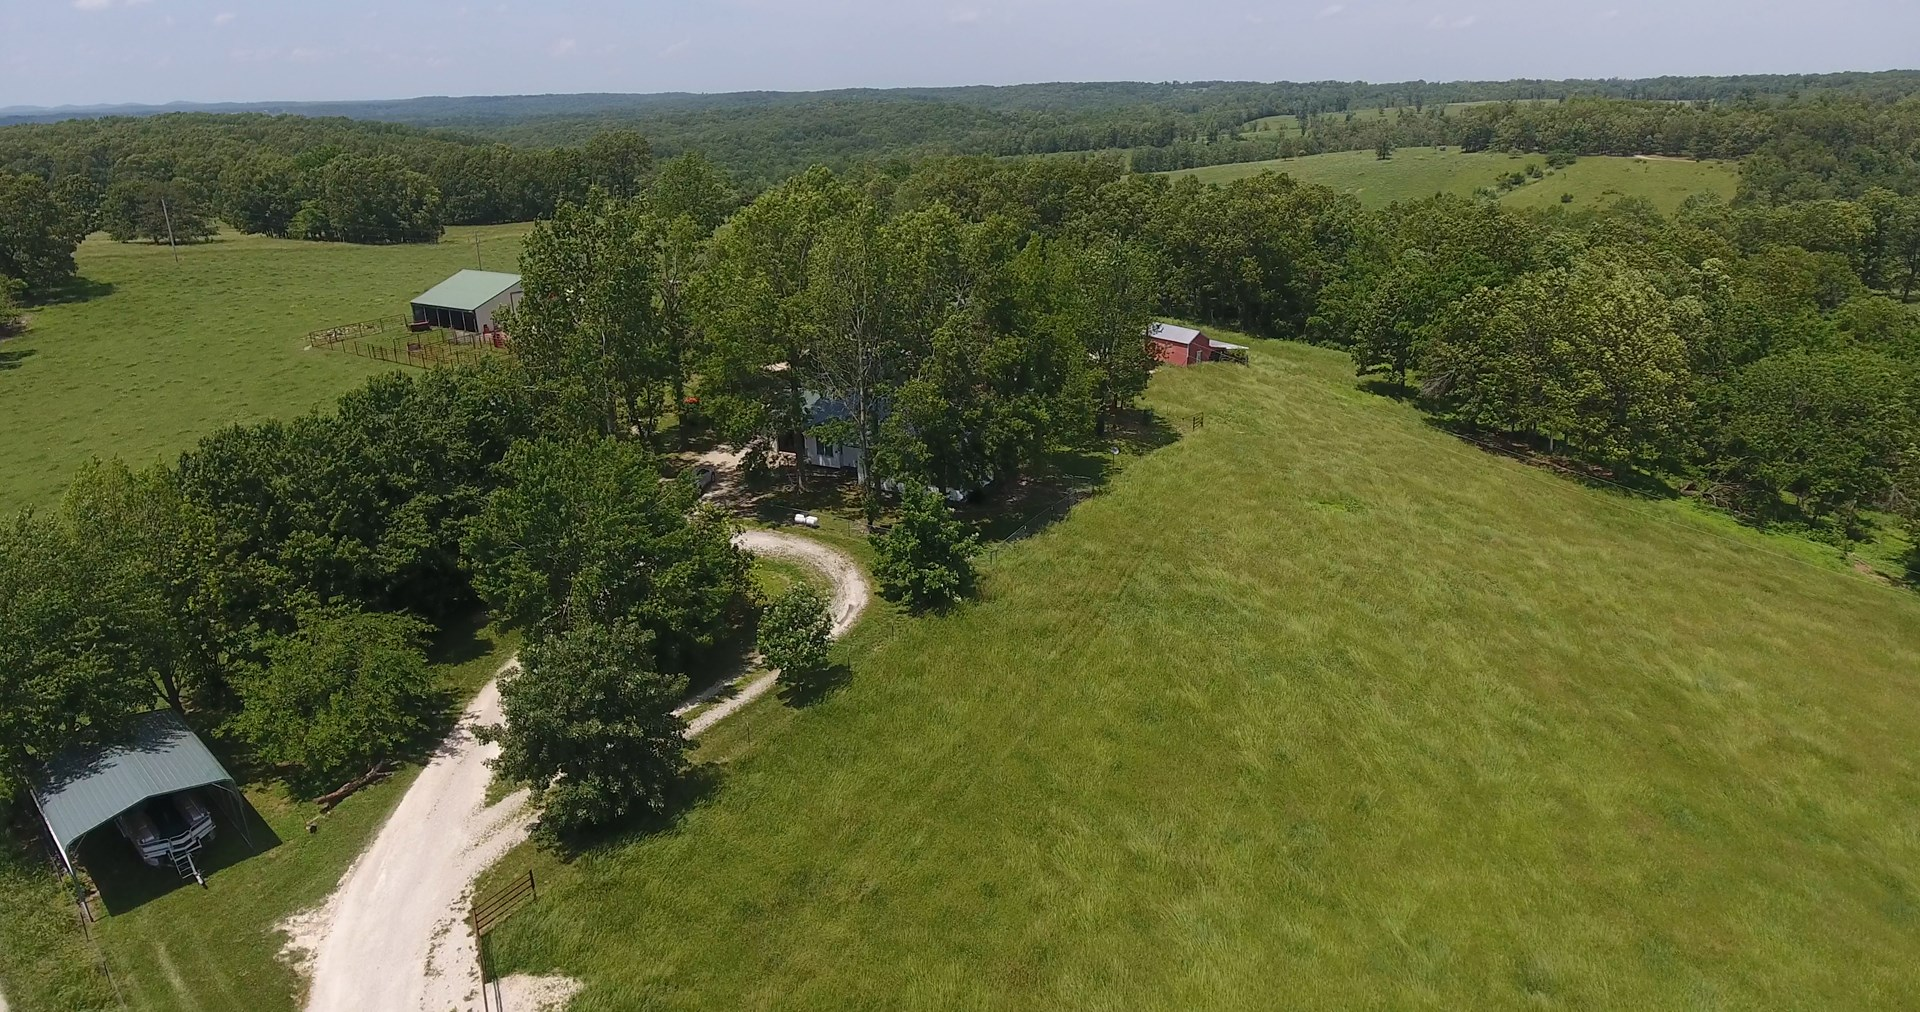 Southern Missouri Ozarks Home with Acreage